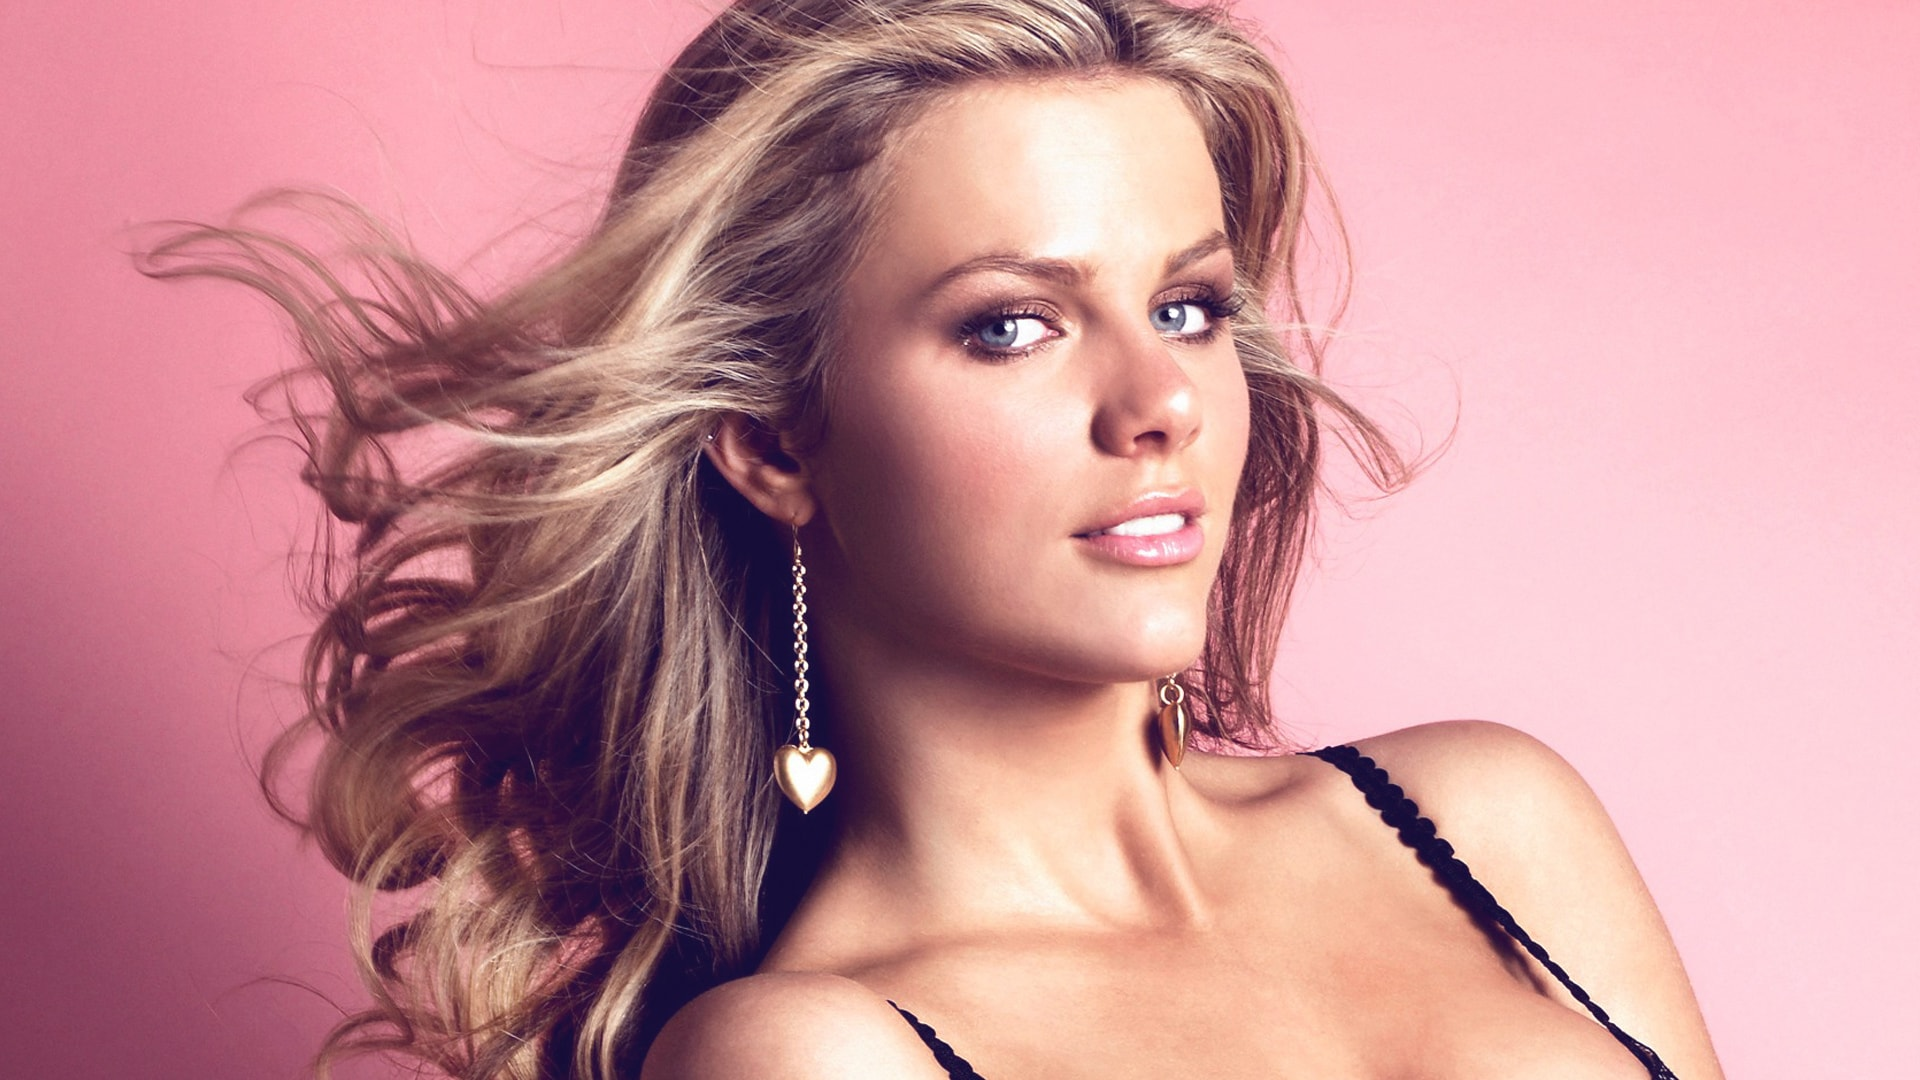 Brooklyn Decker Widescreen